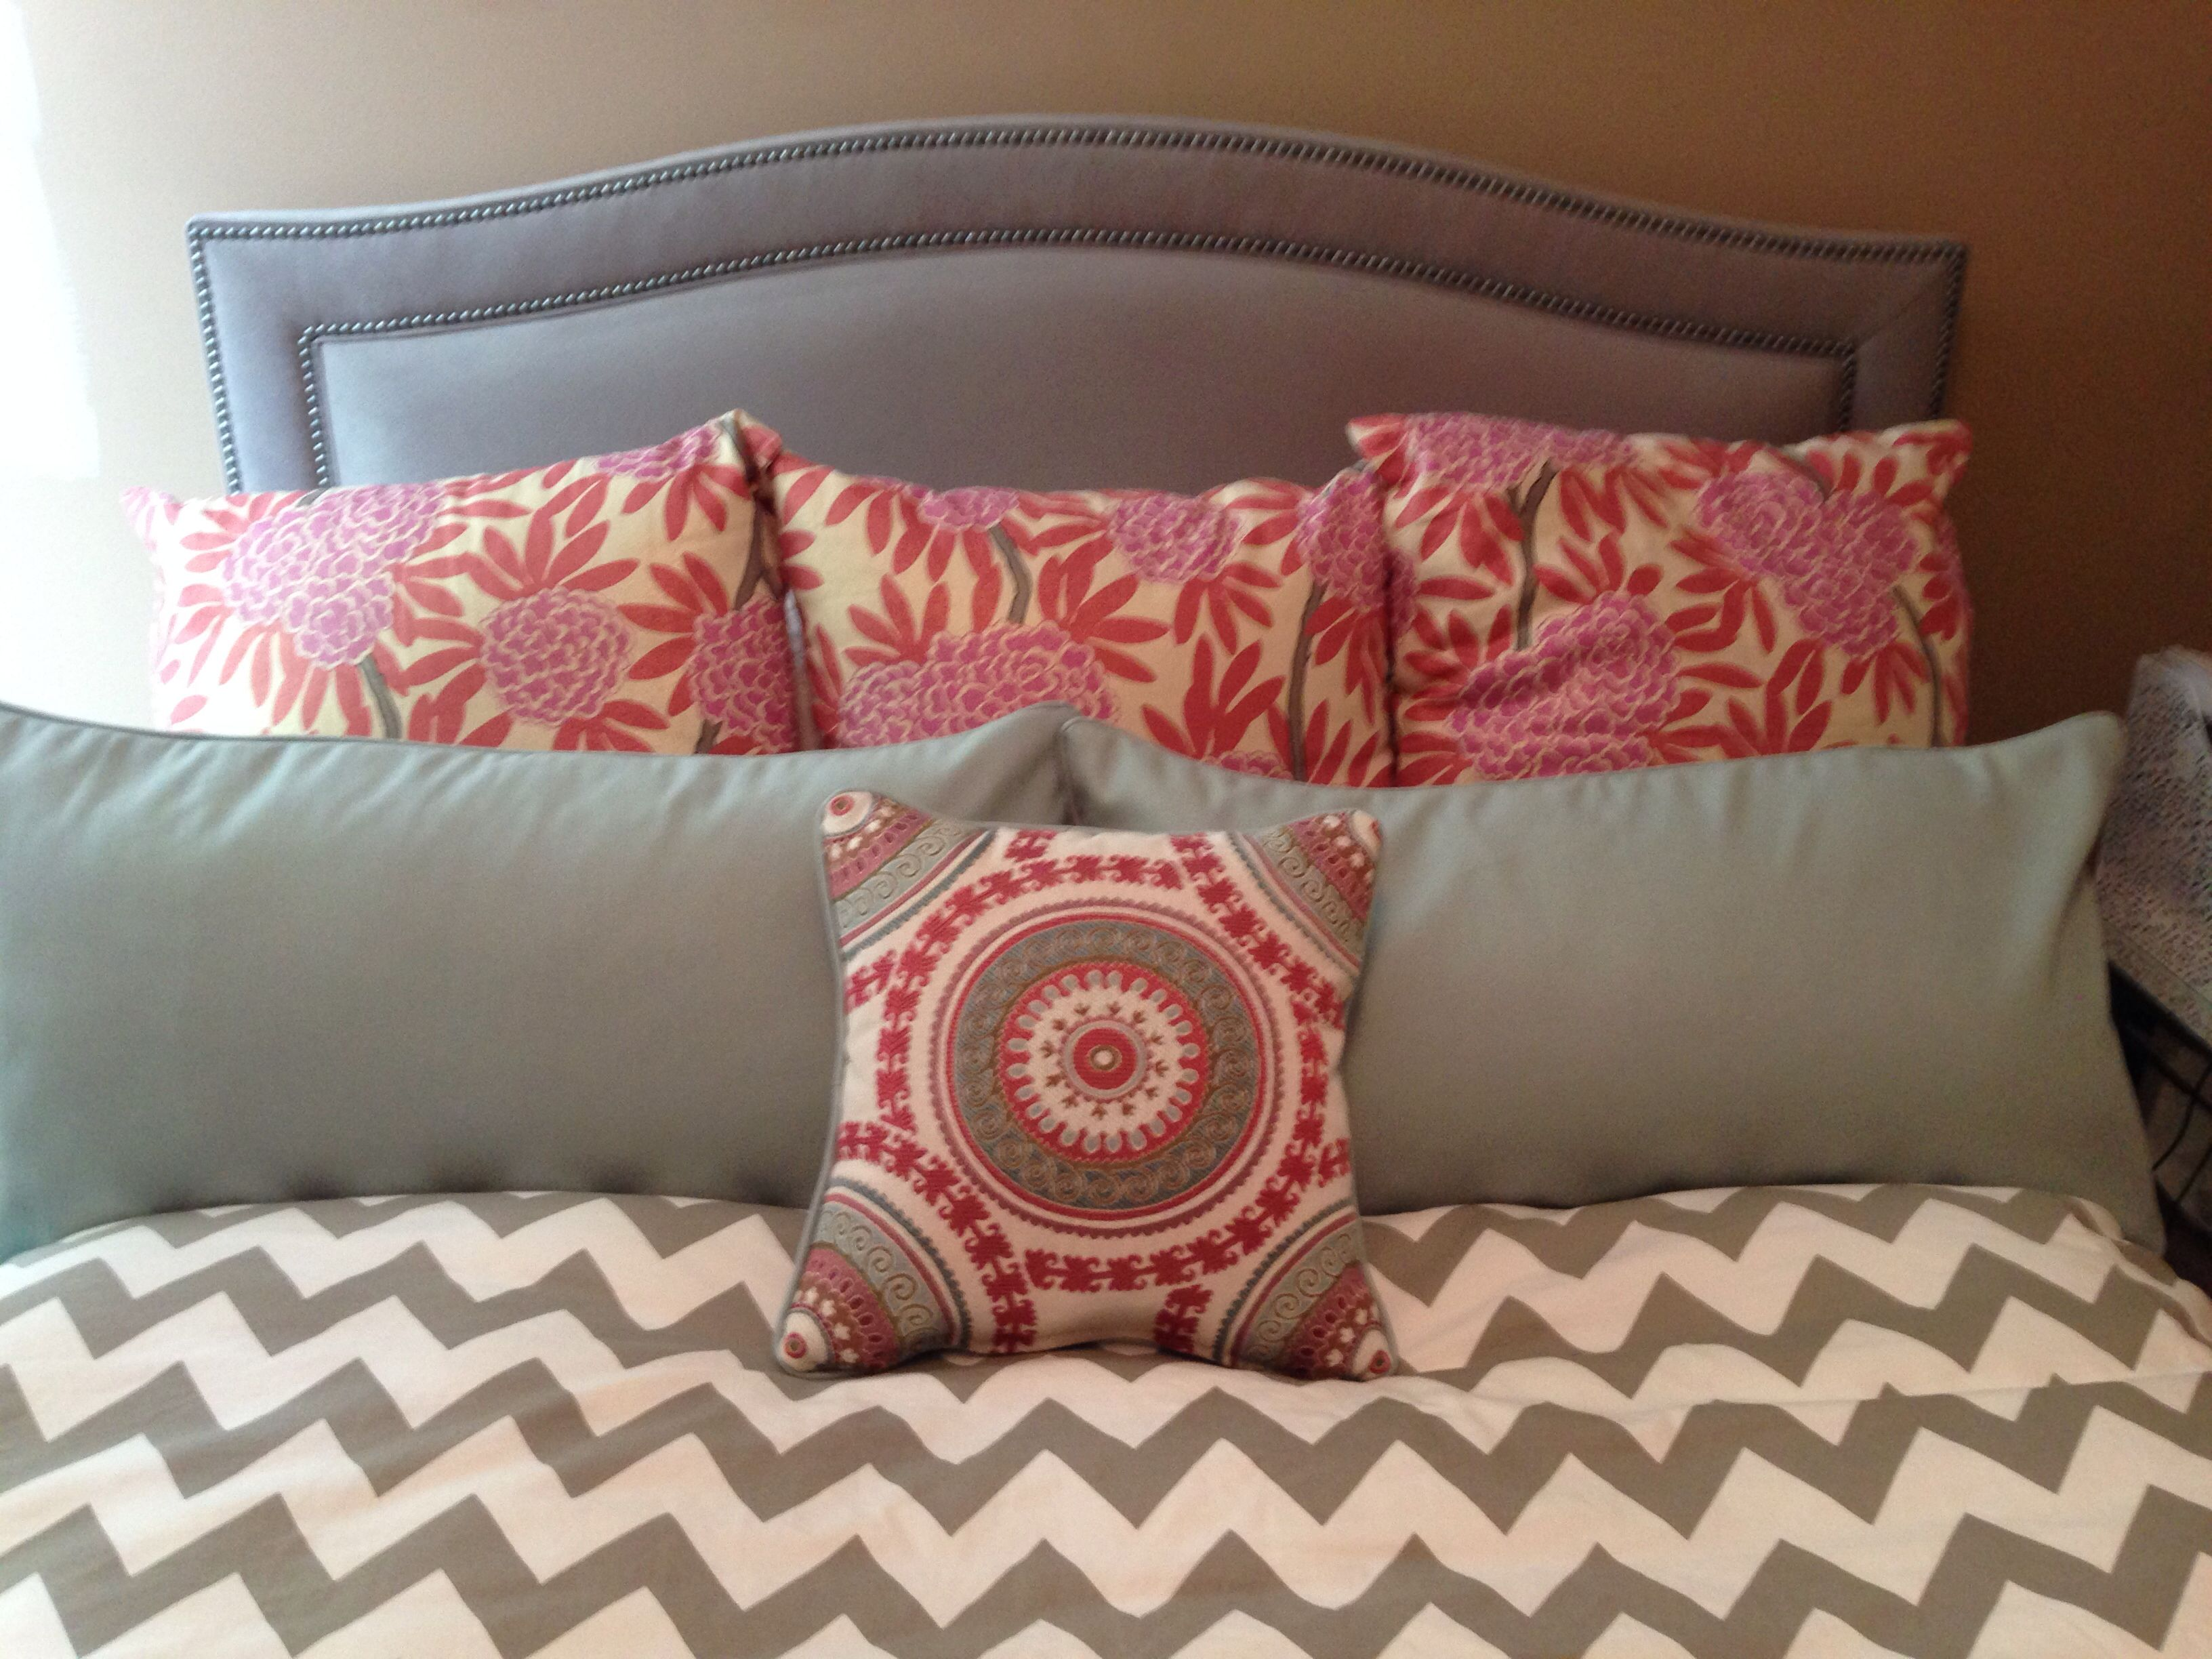 Gray upholstered bed chevron bedding Aqua coral and gray kravet